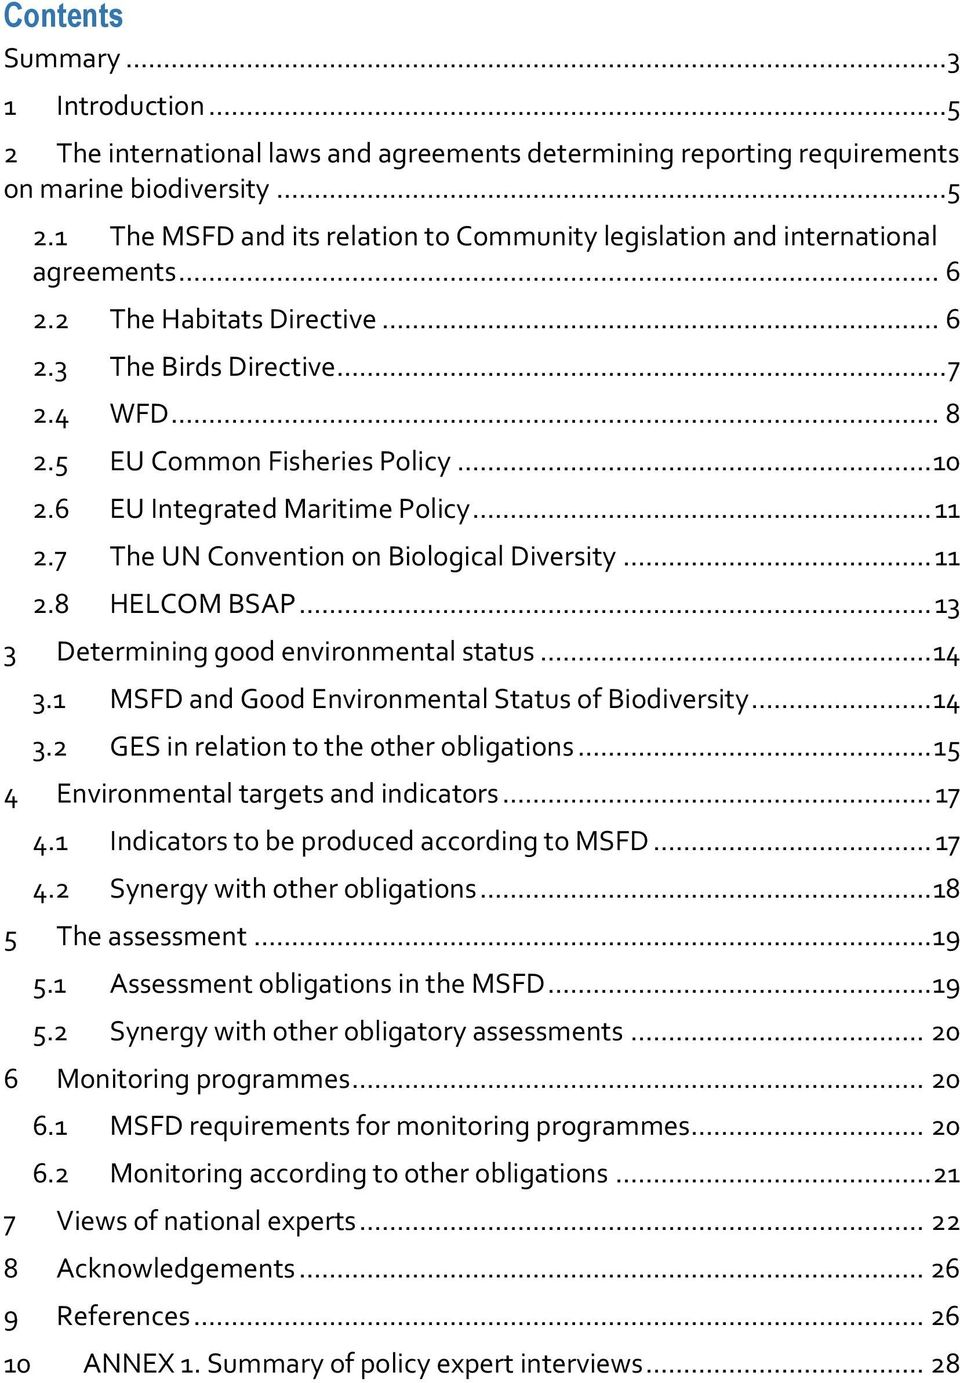 7 The UN Convention on Biological Diversity... 11 2.8 HELCOM BSAP... 13 3 Determining good environmental status... 14 3.1 MSFD and Good Environmental Status of Biodiversity... 14 3.2 GES in relation to the other obligations.